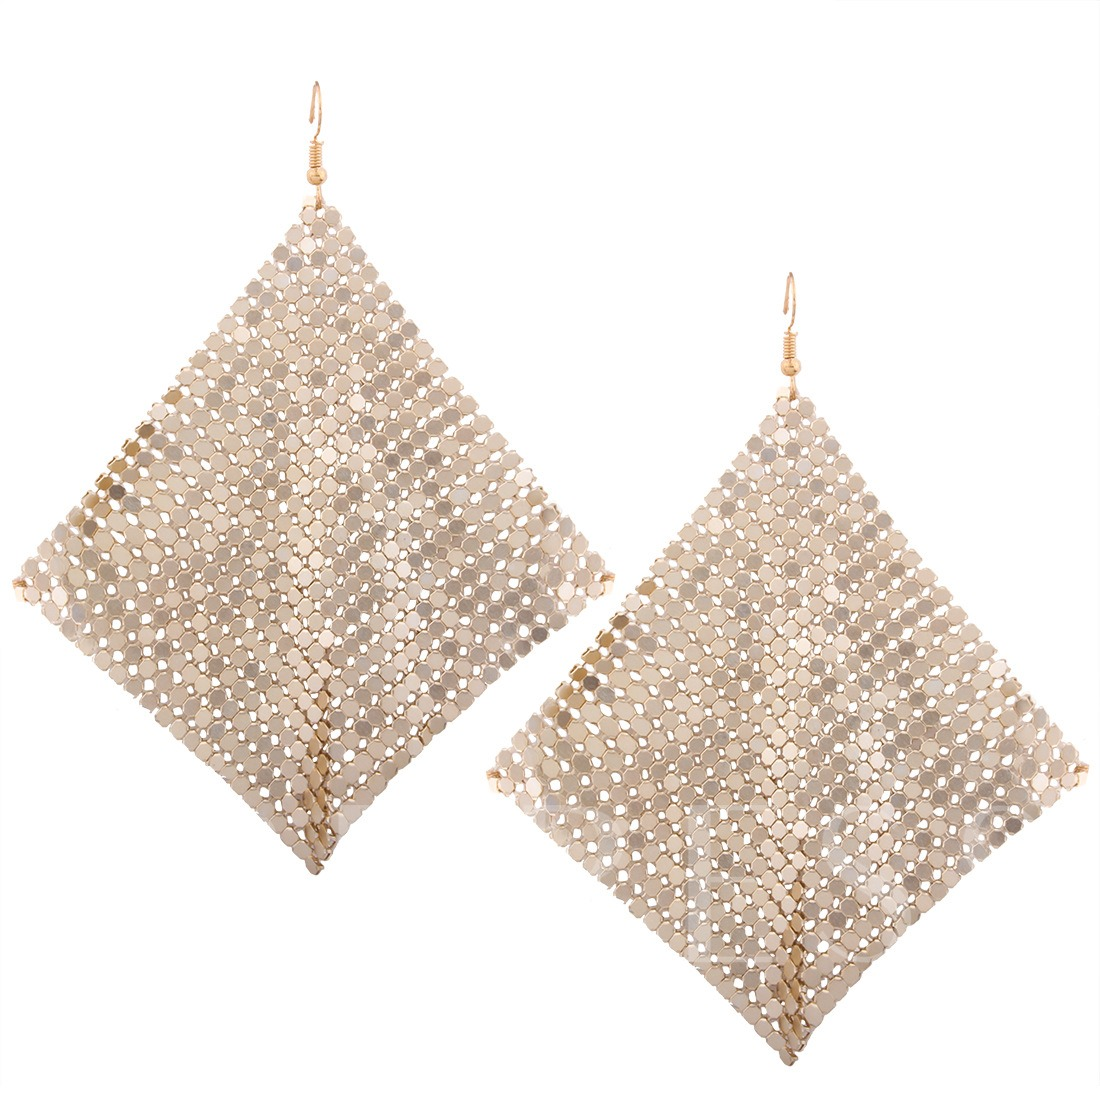 Aluminium Sheet Chain Geometric European Earrings